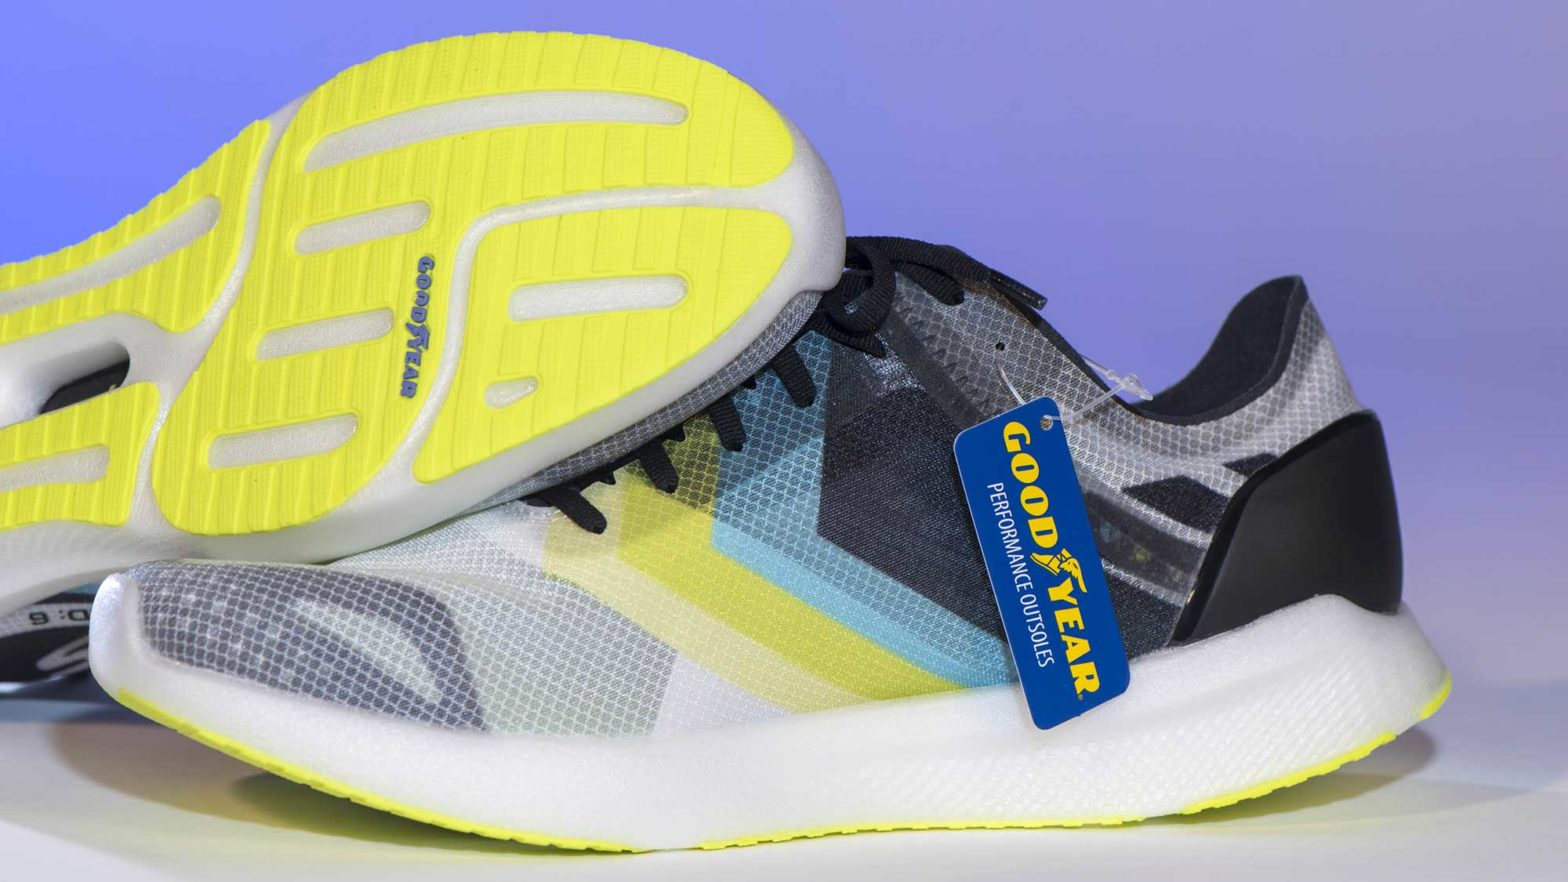 Skechers x Goodyear Expands Collaboration